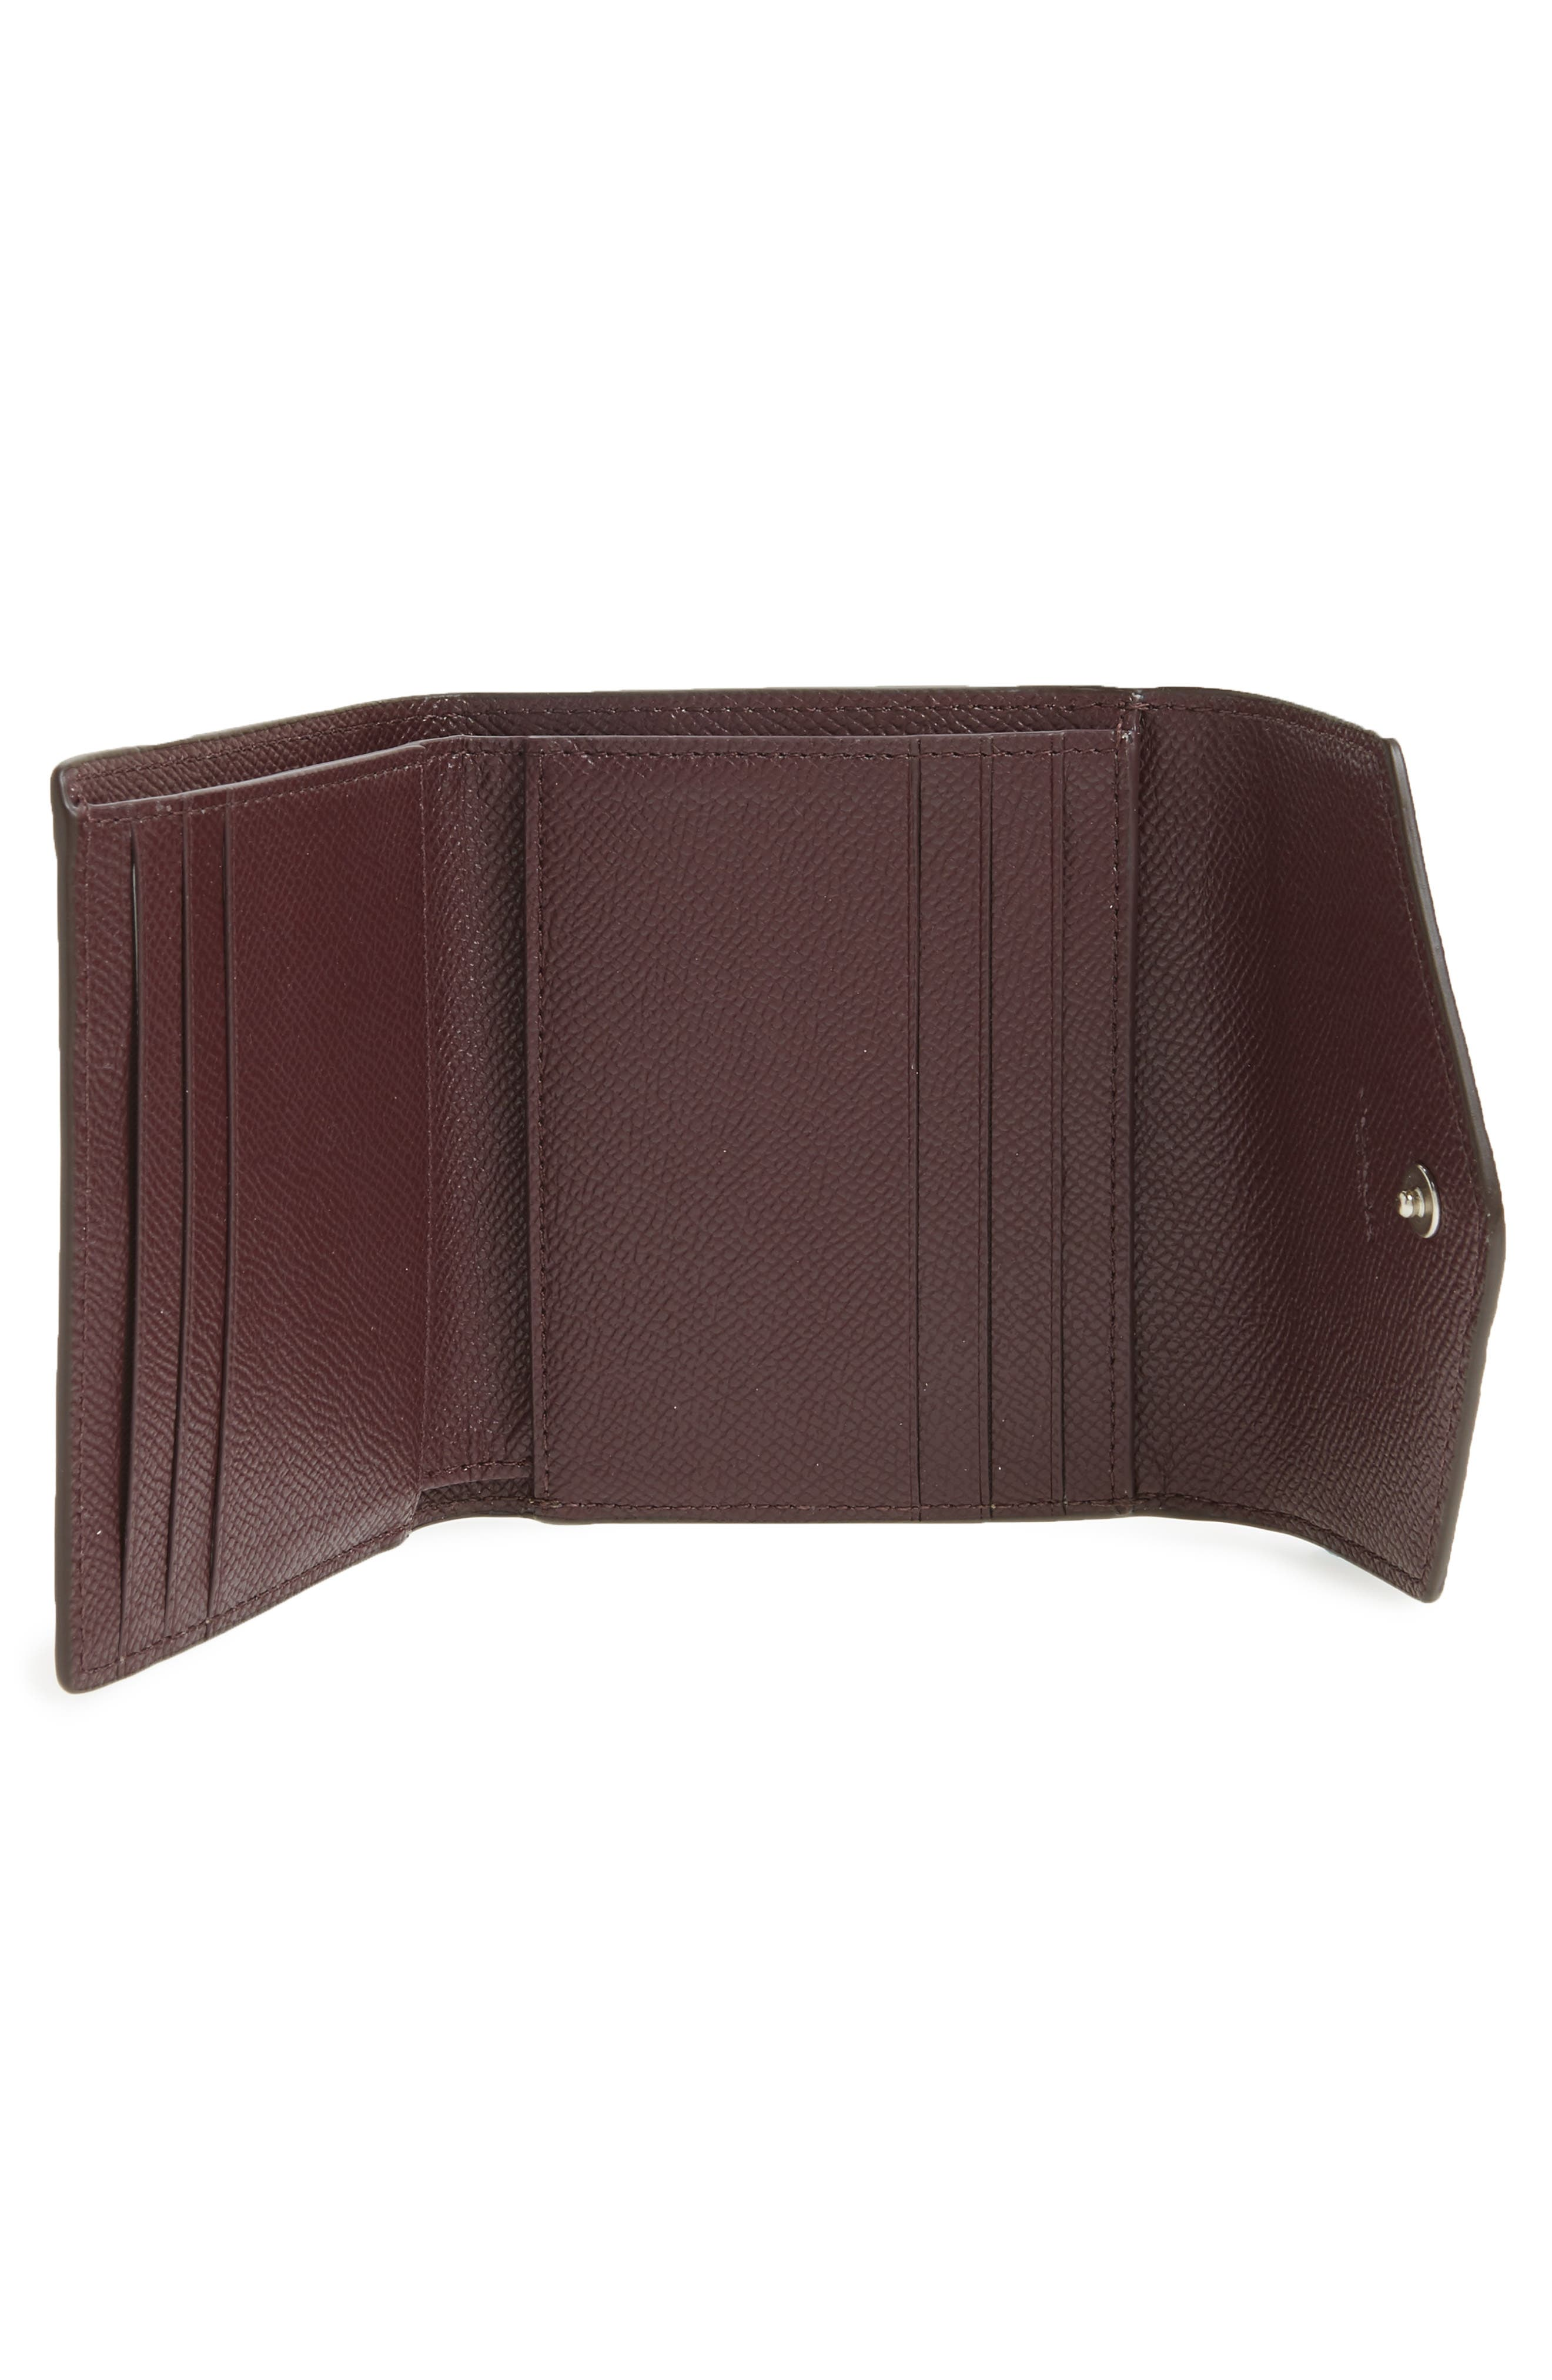 Small Colorblock Calfskin Leather Wallet,                             Alternate thumbnail 2, color,                             Stone/ Melon/ Oxblood